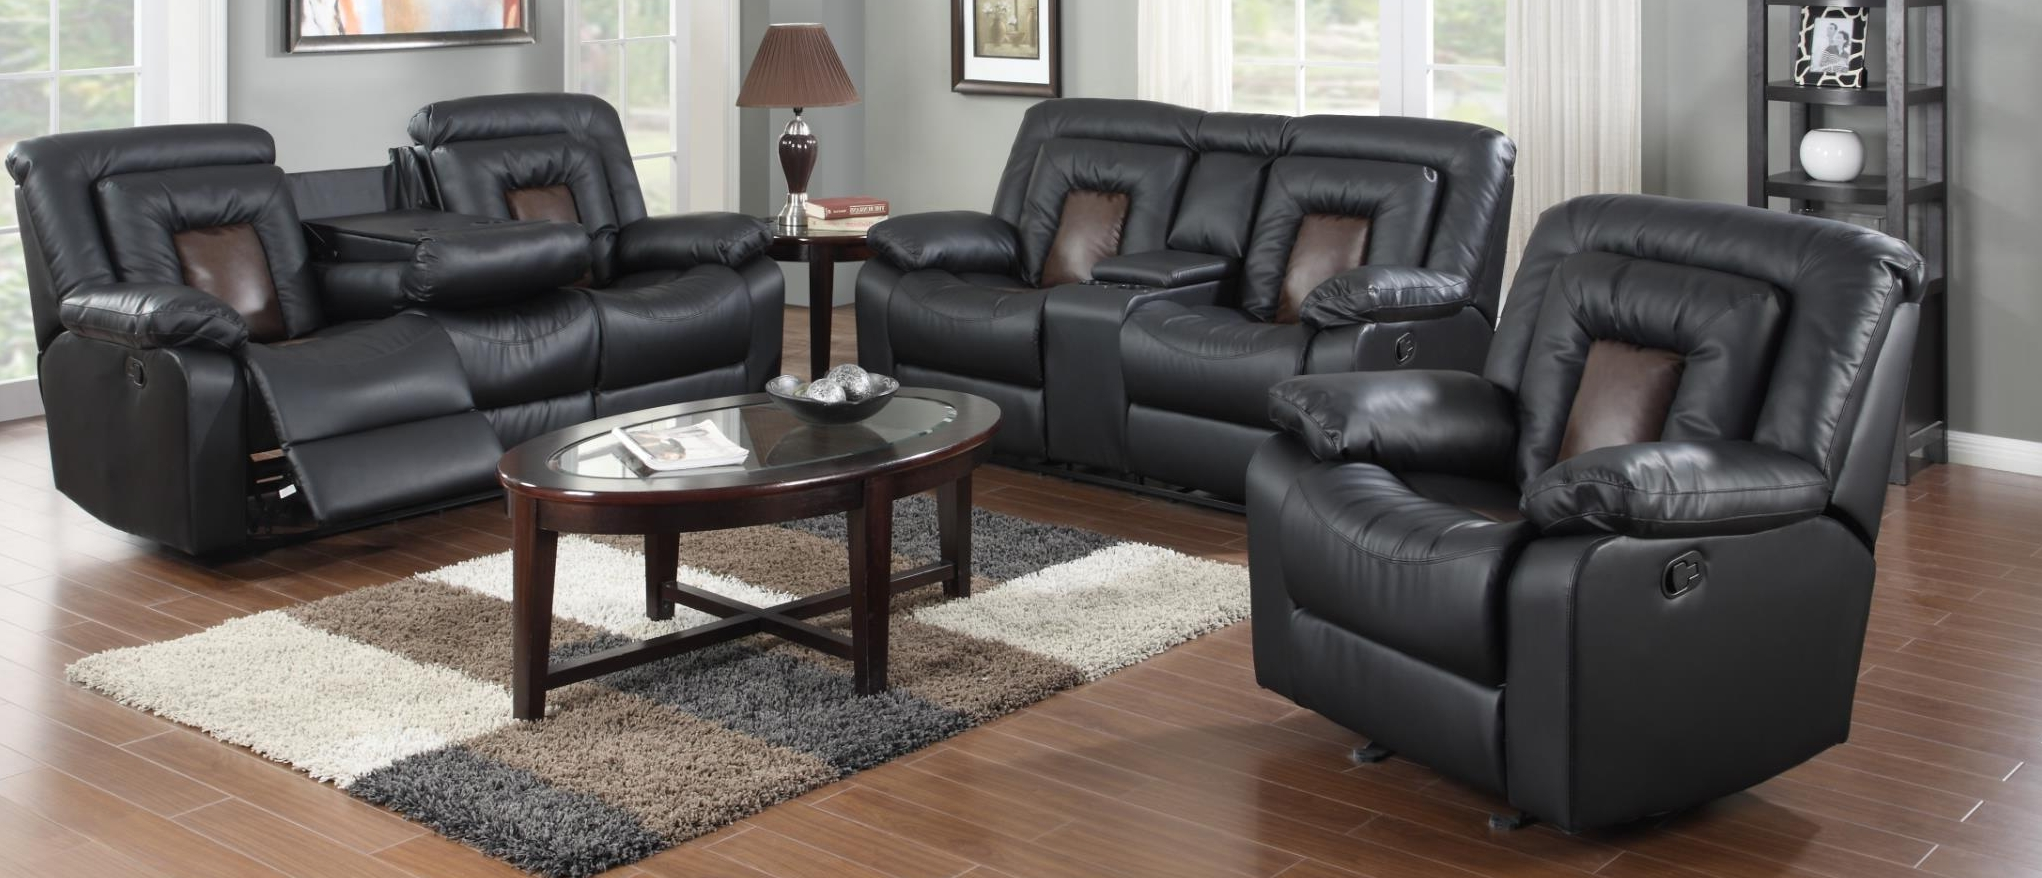 Virginia Sectional Sofas With Regard To Recent Sofa & Sectionals – Pluto Distribution (View 11 of 20)